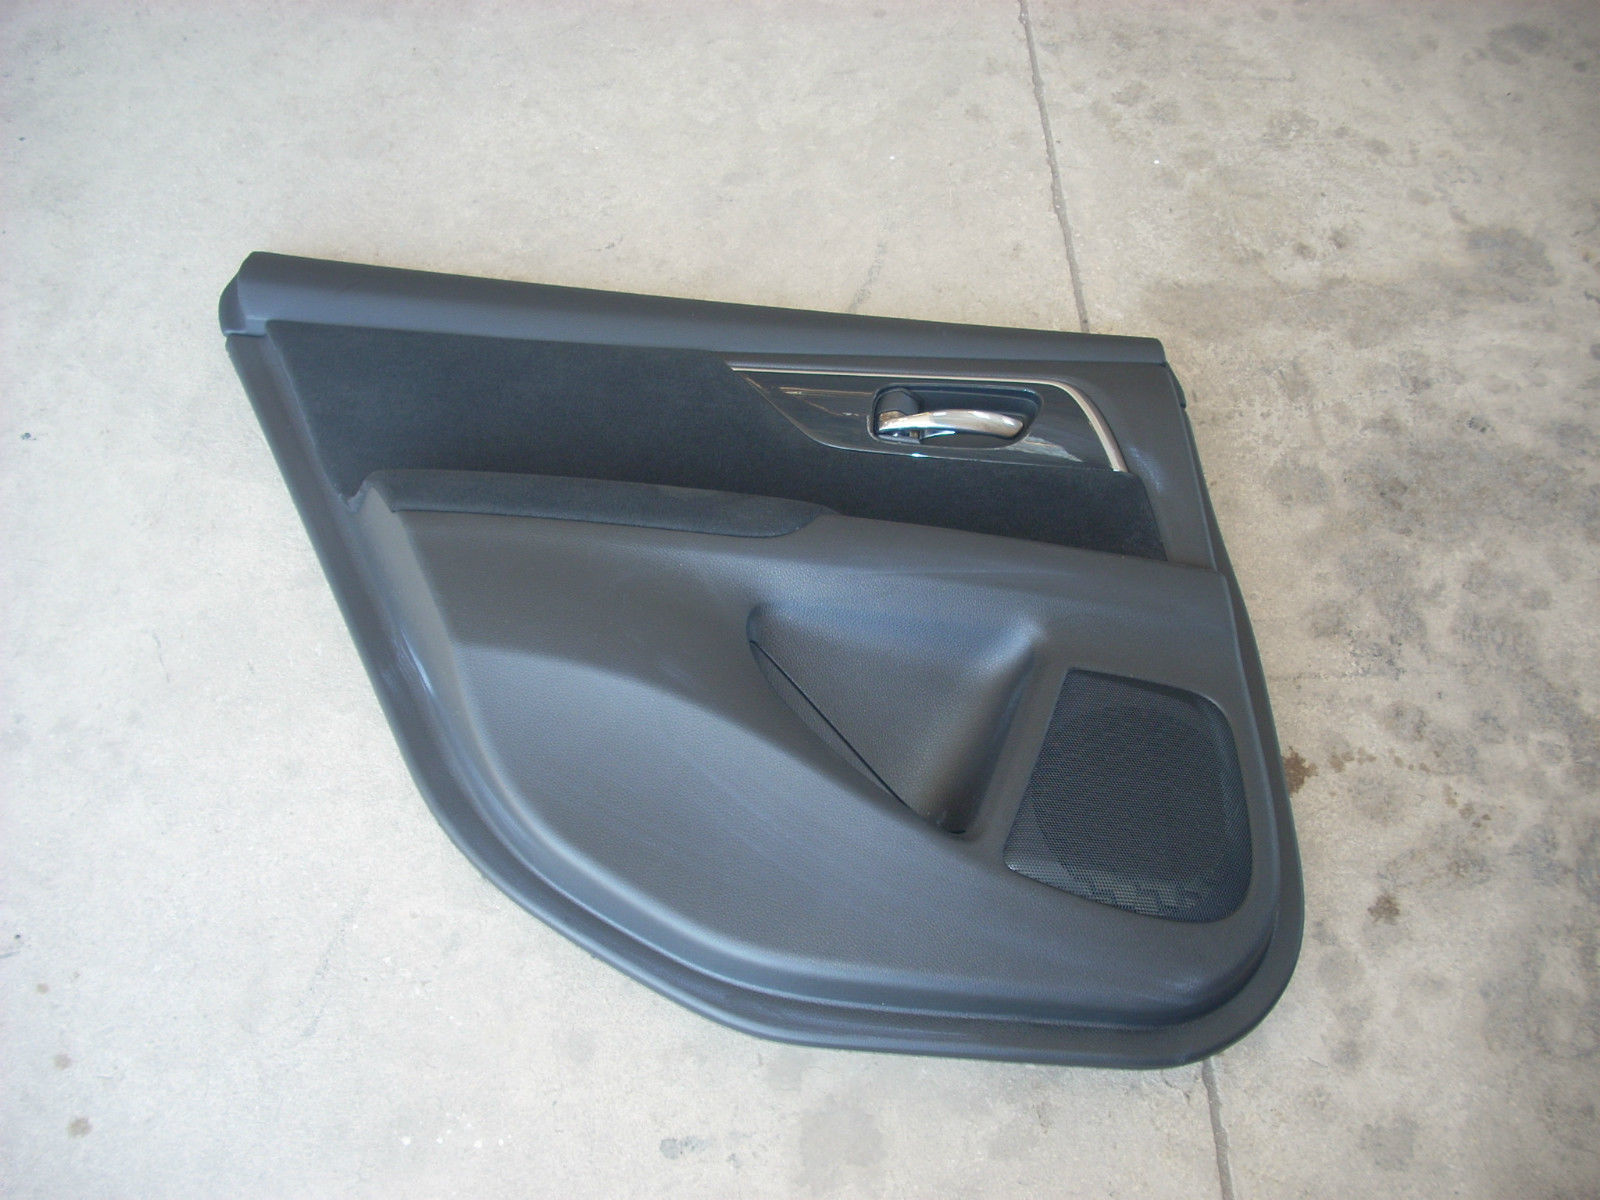 2013 nissan altima left rear door trim panel for 01561 left rear door